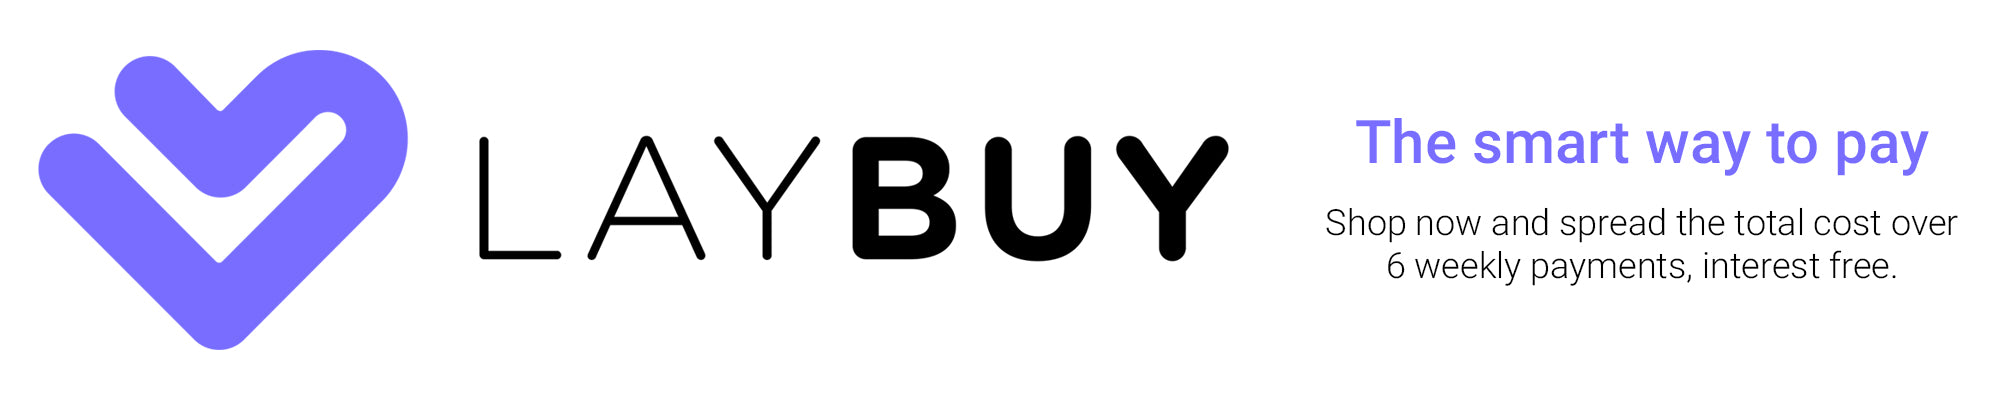 laybuy the smart way to pay. shop now and spread the cost over 6 weekly payments, interest free.